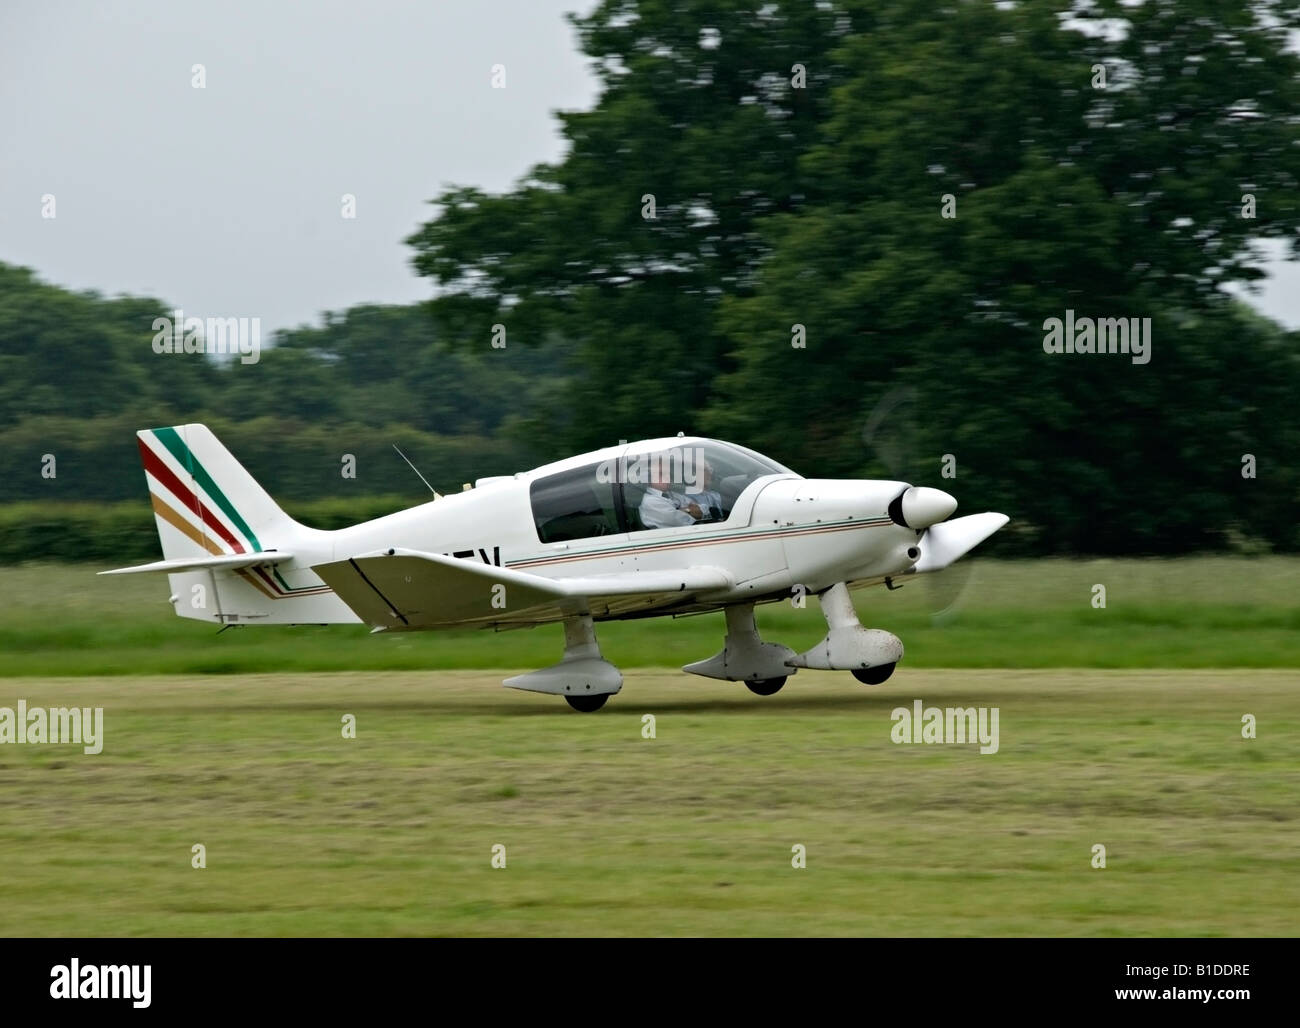 Robin light aircraft landing at Headcorn (Lashenden) aerodrome, Kent, England - Stock Image